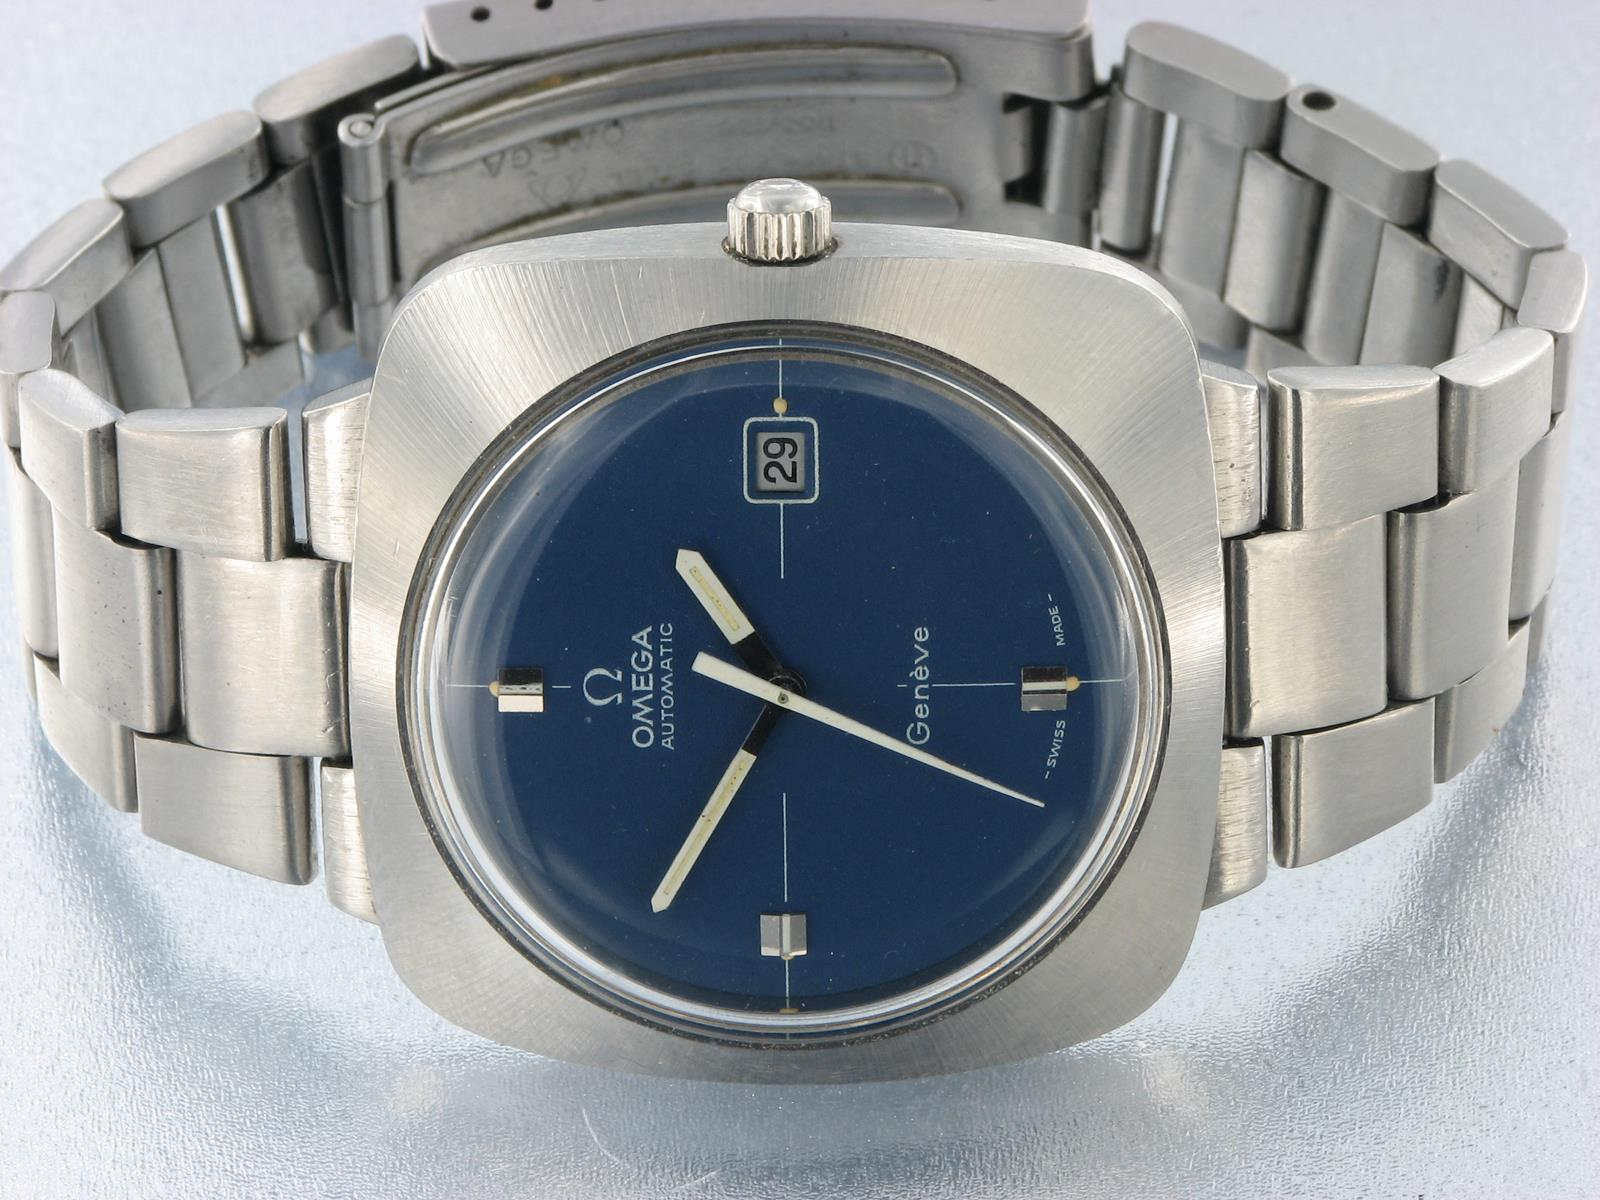 76743a67331 Omega Geneve Automatic Vintage Stainless Steel Watch Blue Dial